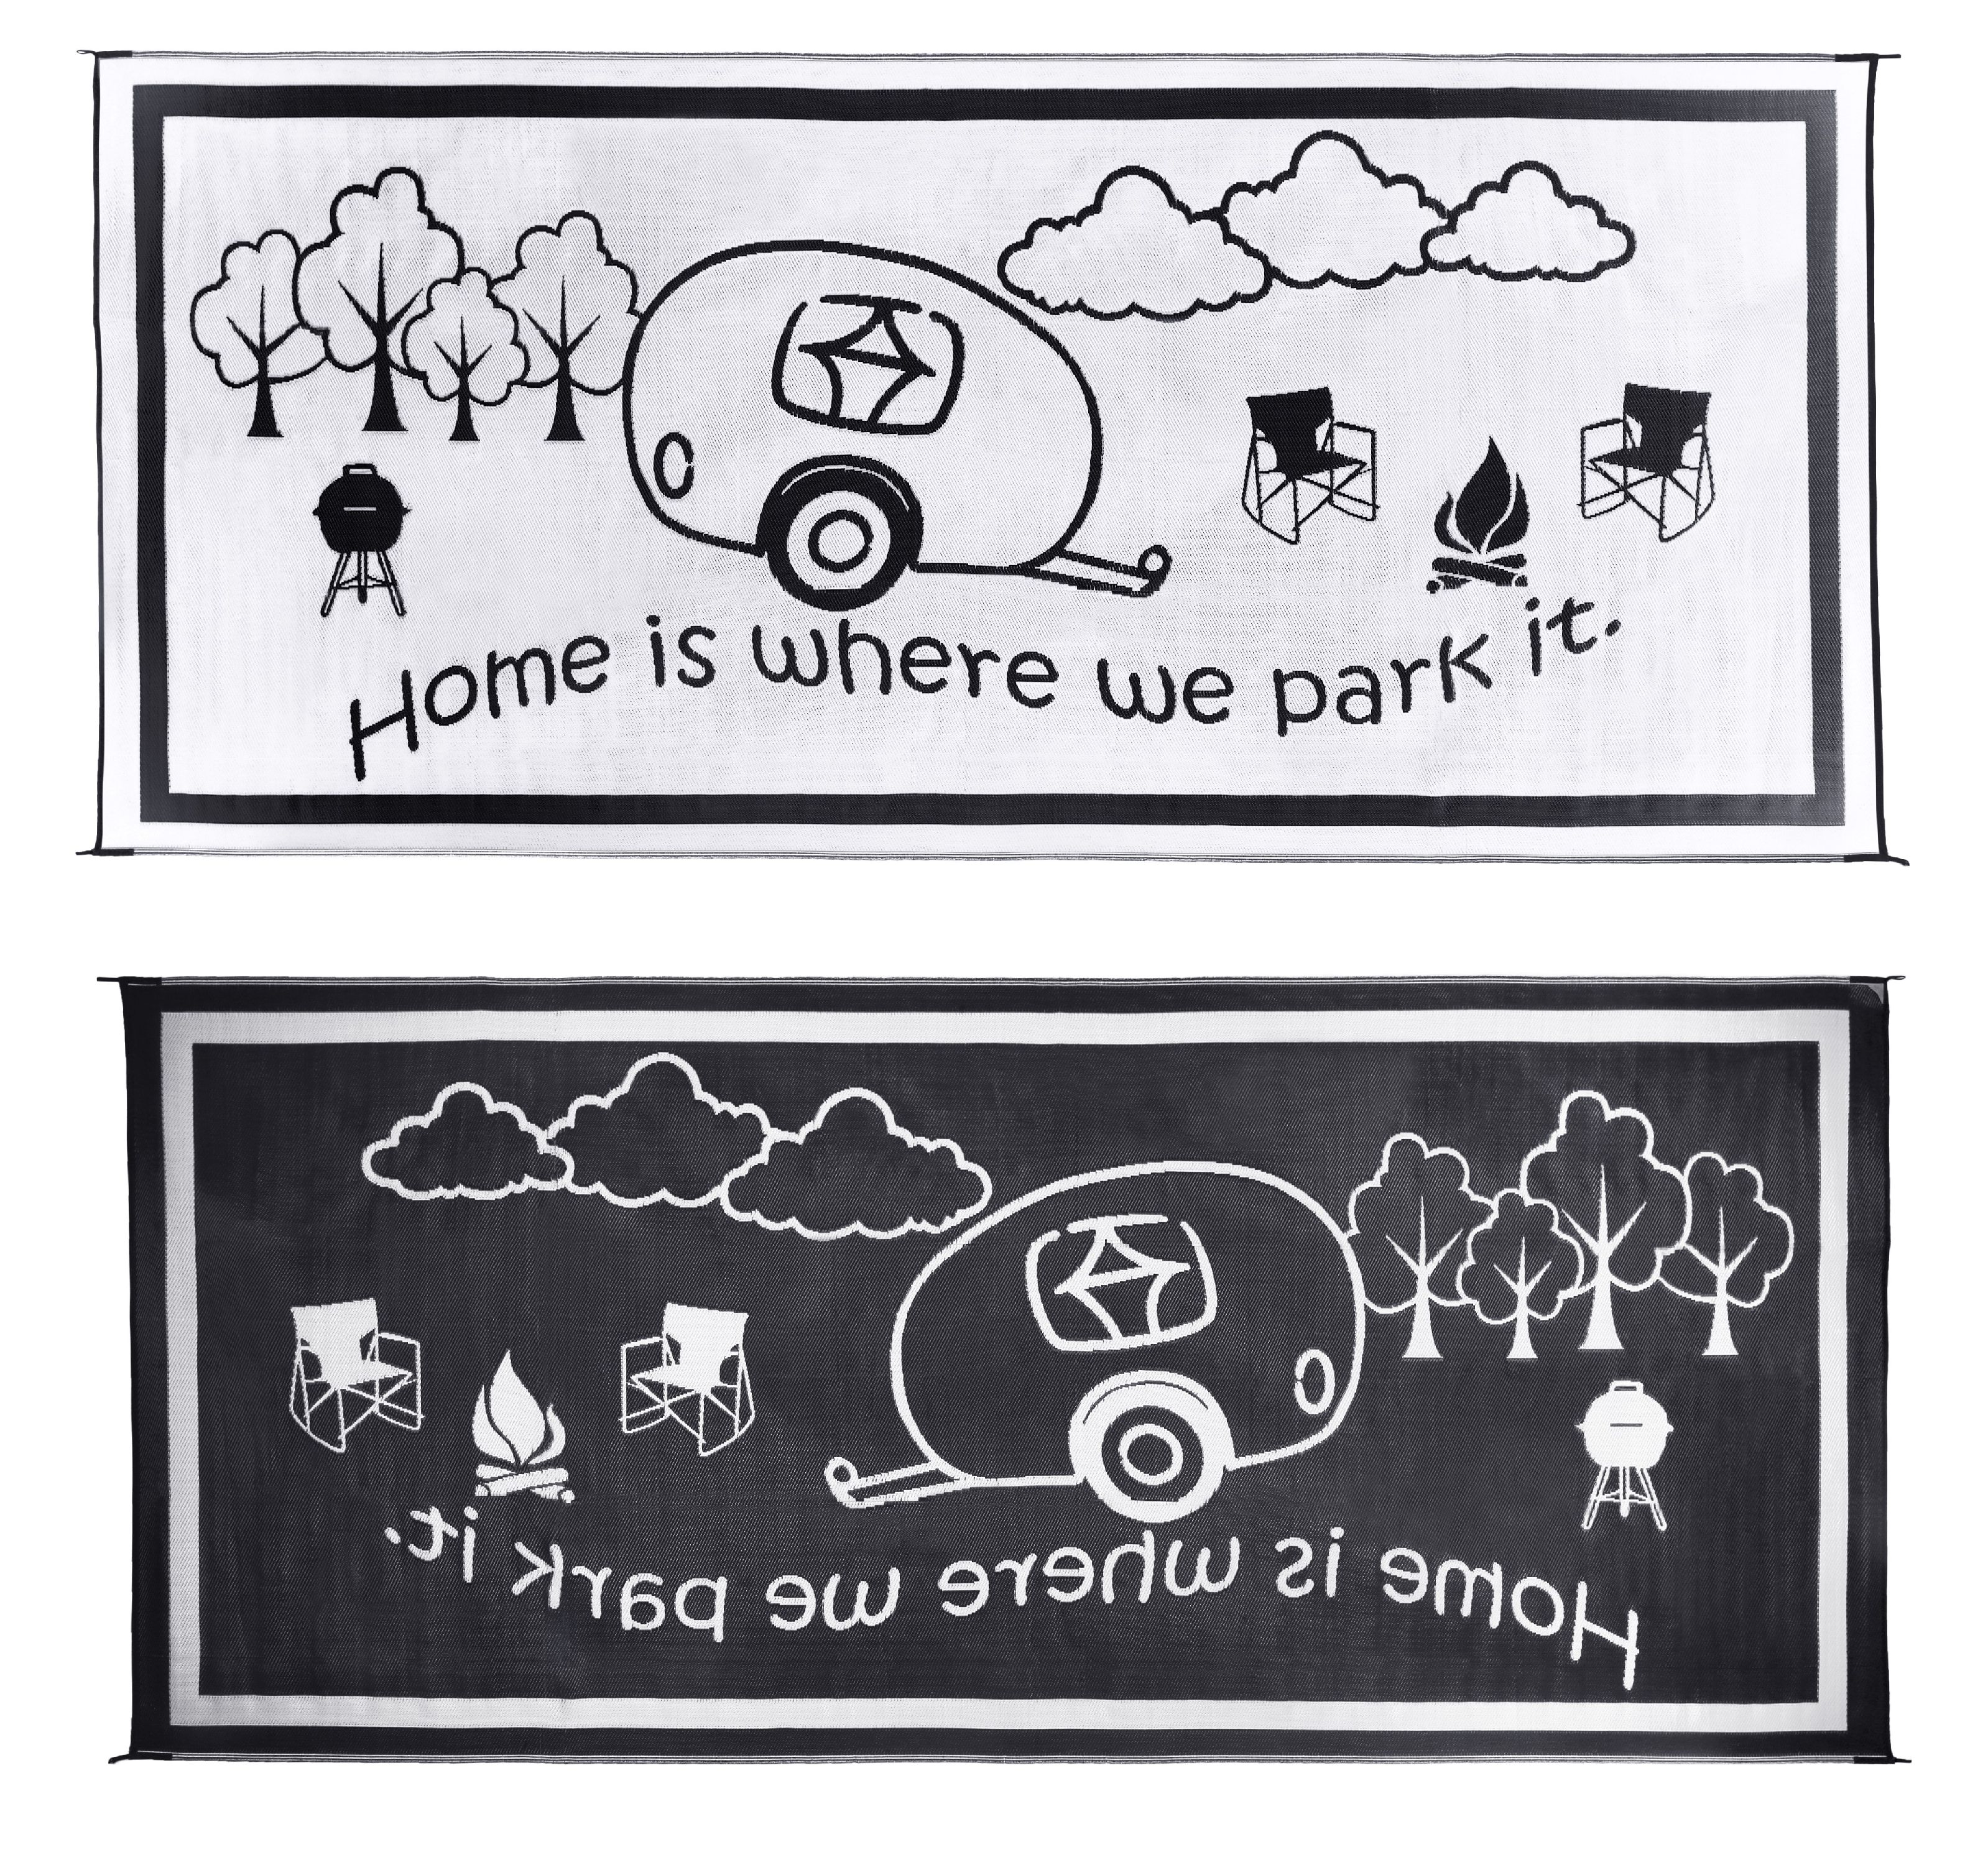 "Stylish Camping 8'x 18' RV Home Outdoor Mat, BLK/WHT ""Home is Where We Park It"""